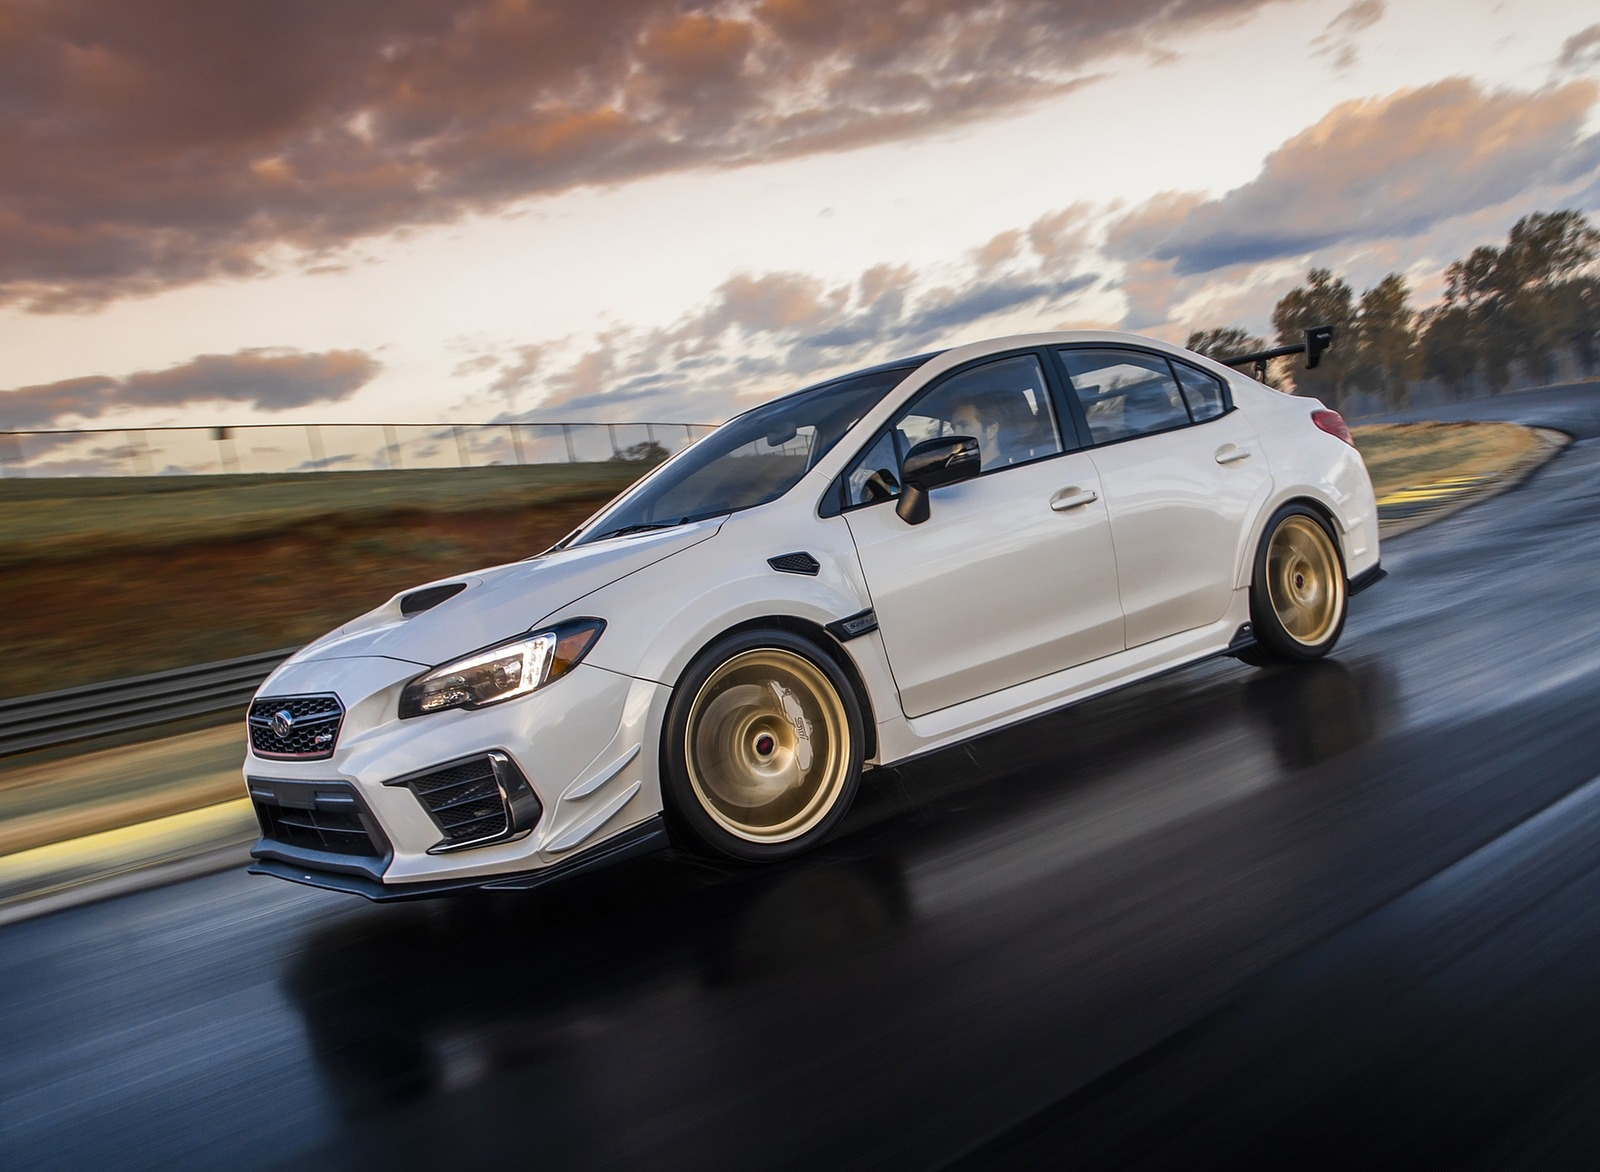 2019 Subaru WRX STI S209 Side Wallpapers (8)